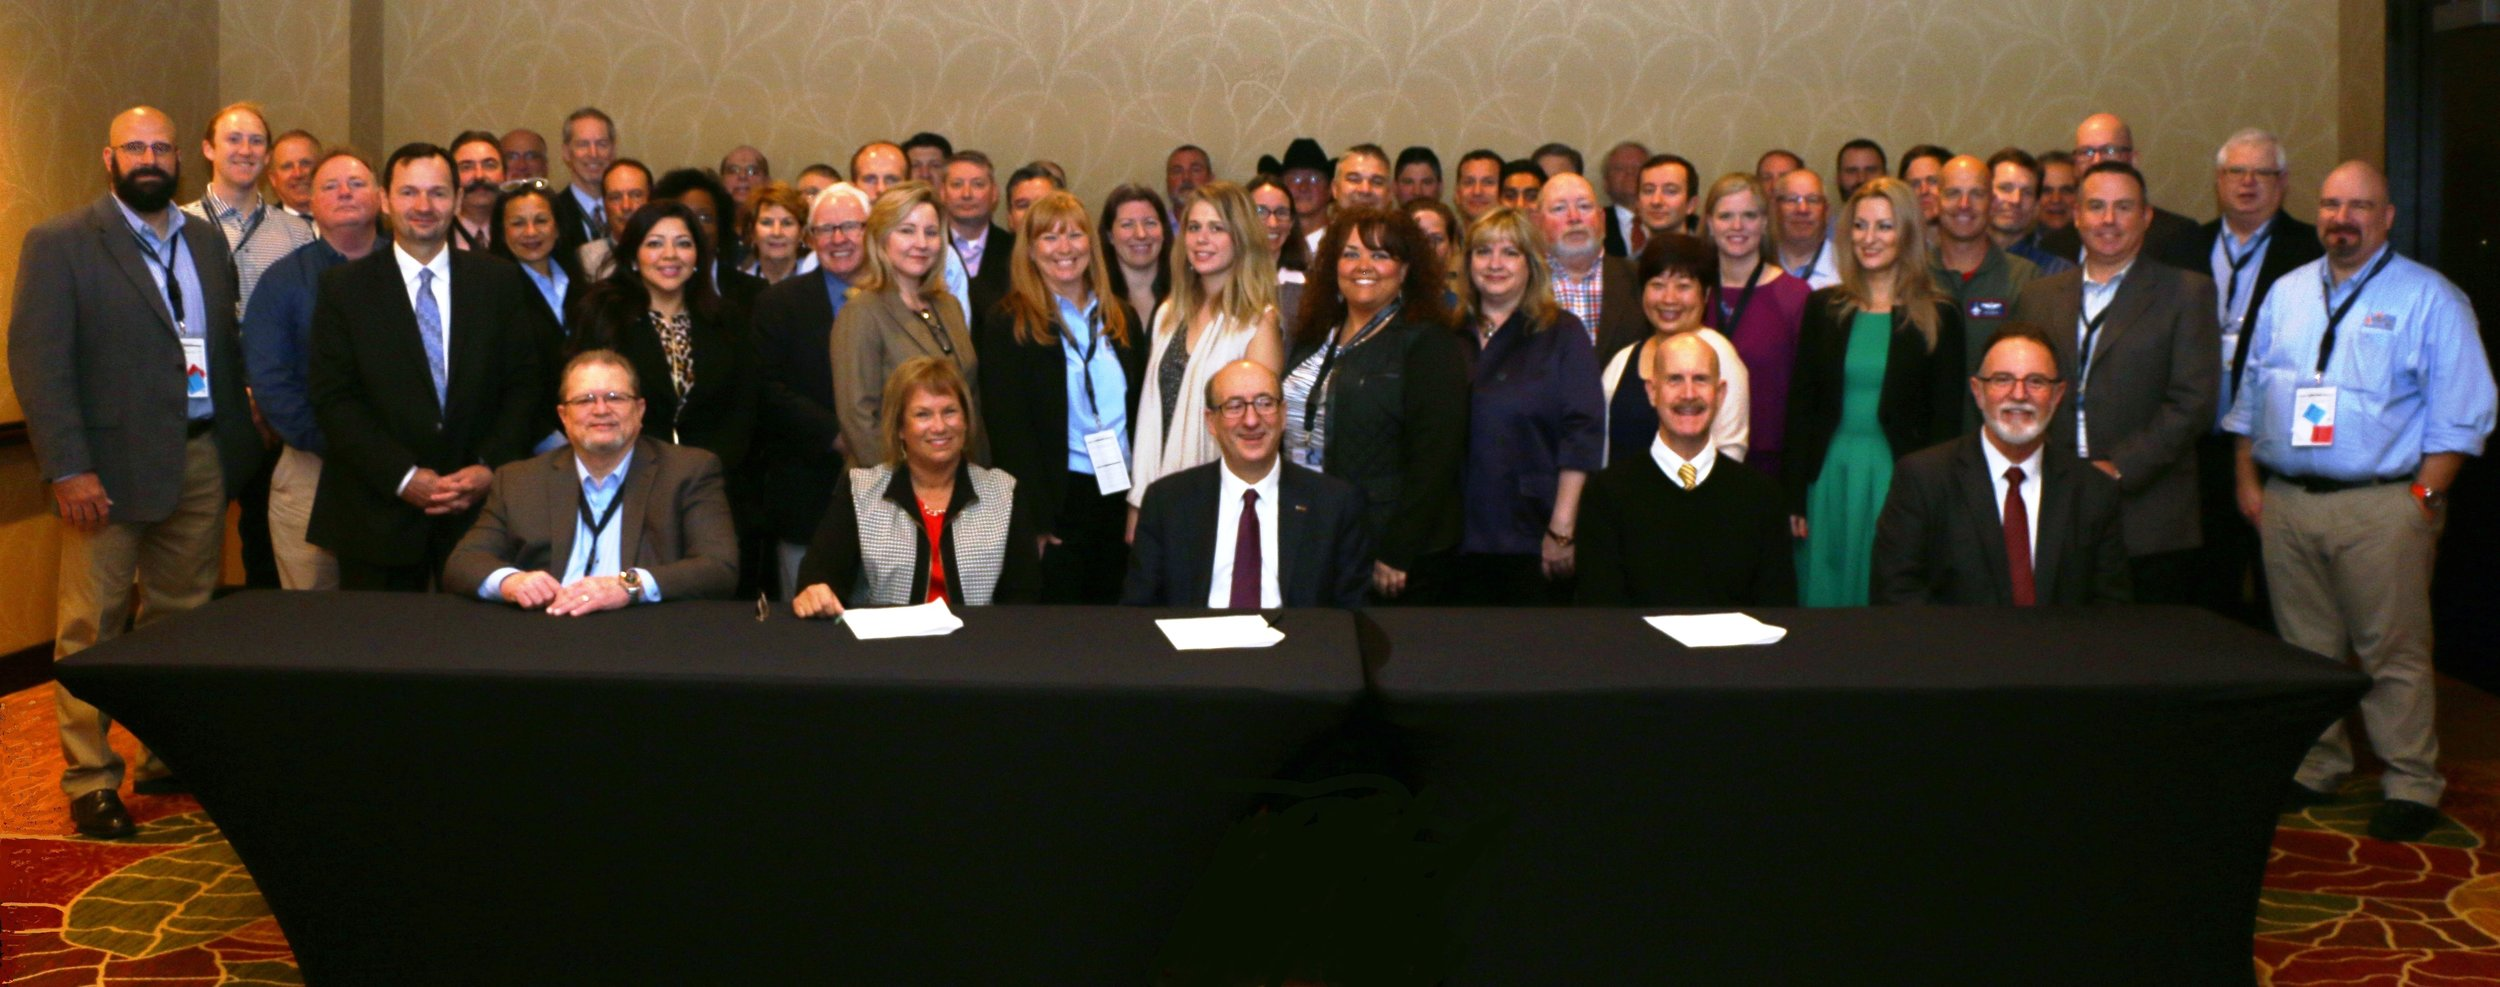 Renewing the National Alliance Agreement on November 29, 2016   Se  ated (L to R):  Jerry Jacobs , Co-Chairperson, National STEPS Network;  Joyce Ryel , Co-Chairperson, National STEPS Network; Assistant Secretary  Dr. David Michaels , USDOL-OSHA;  John Howard , Director, NIOSH; and  Rick Ingram , Chairperson, National STEPS Network.